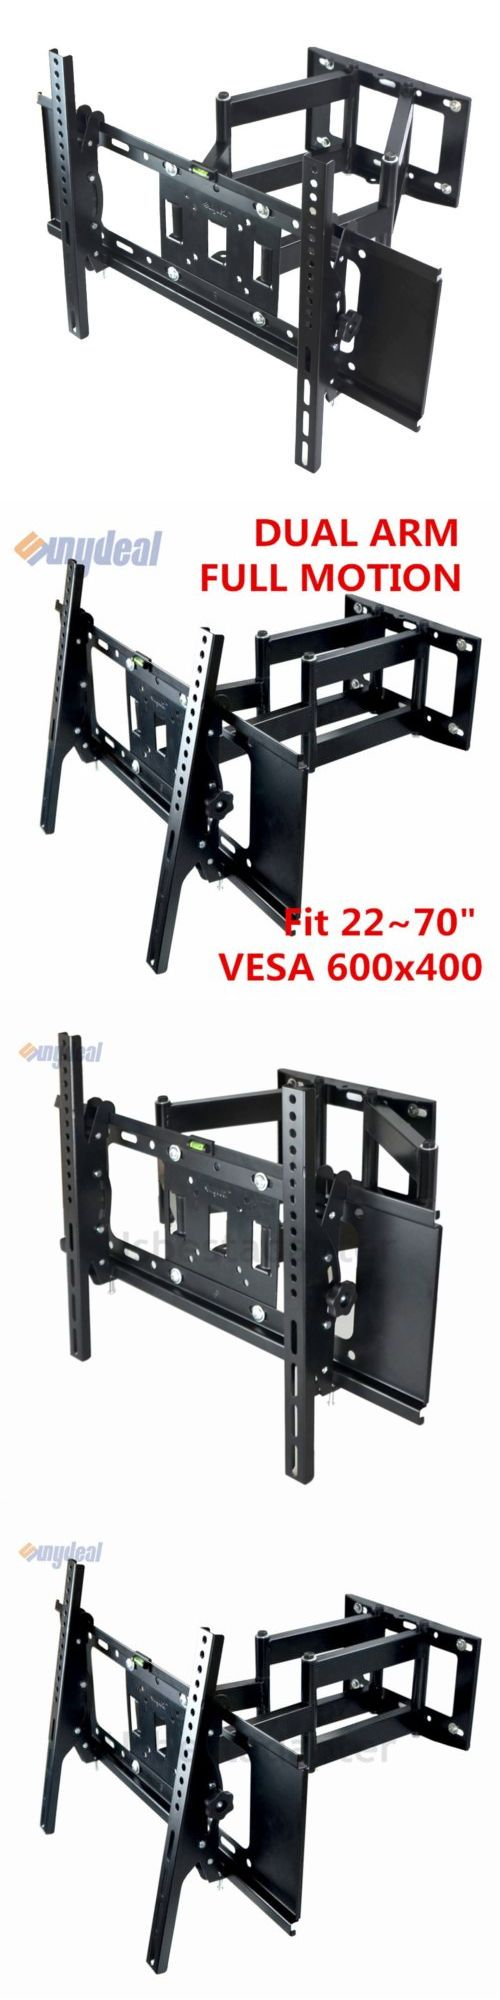 TV Mounts and Brackets: Full Motion Plasma Lcd Led Tv Wall Mount Bracket 32 42 50 55 60 70 80 Dual Arm -> BUY IT NOW ONLY: $30.22 on eBay!